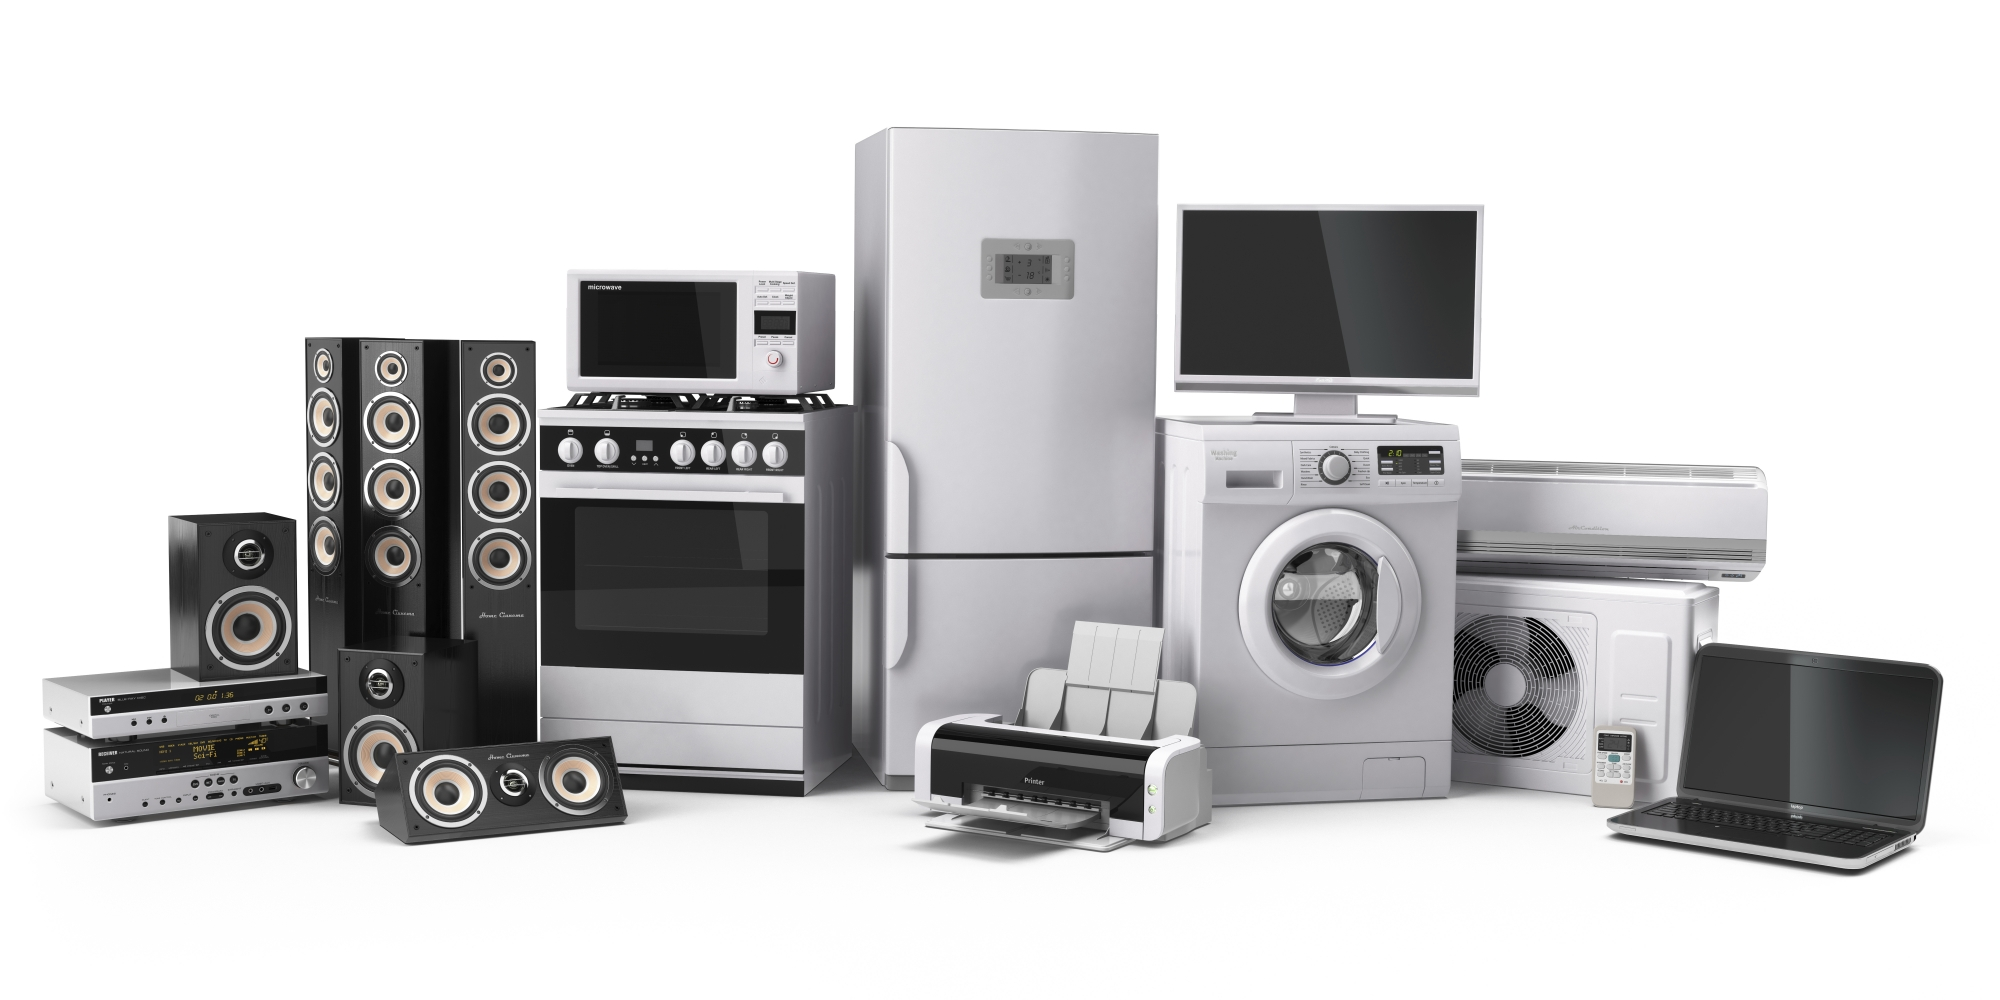 Top Things To Consider When Choosing An Equipment And Parts Supplier